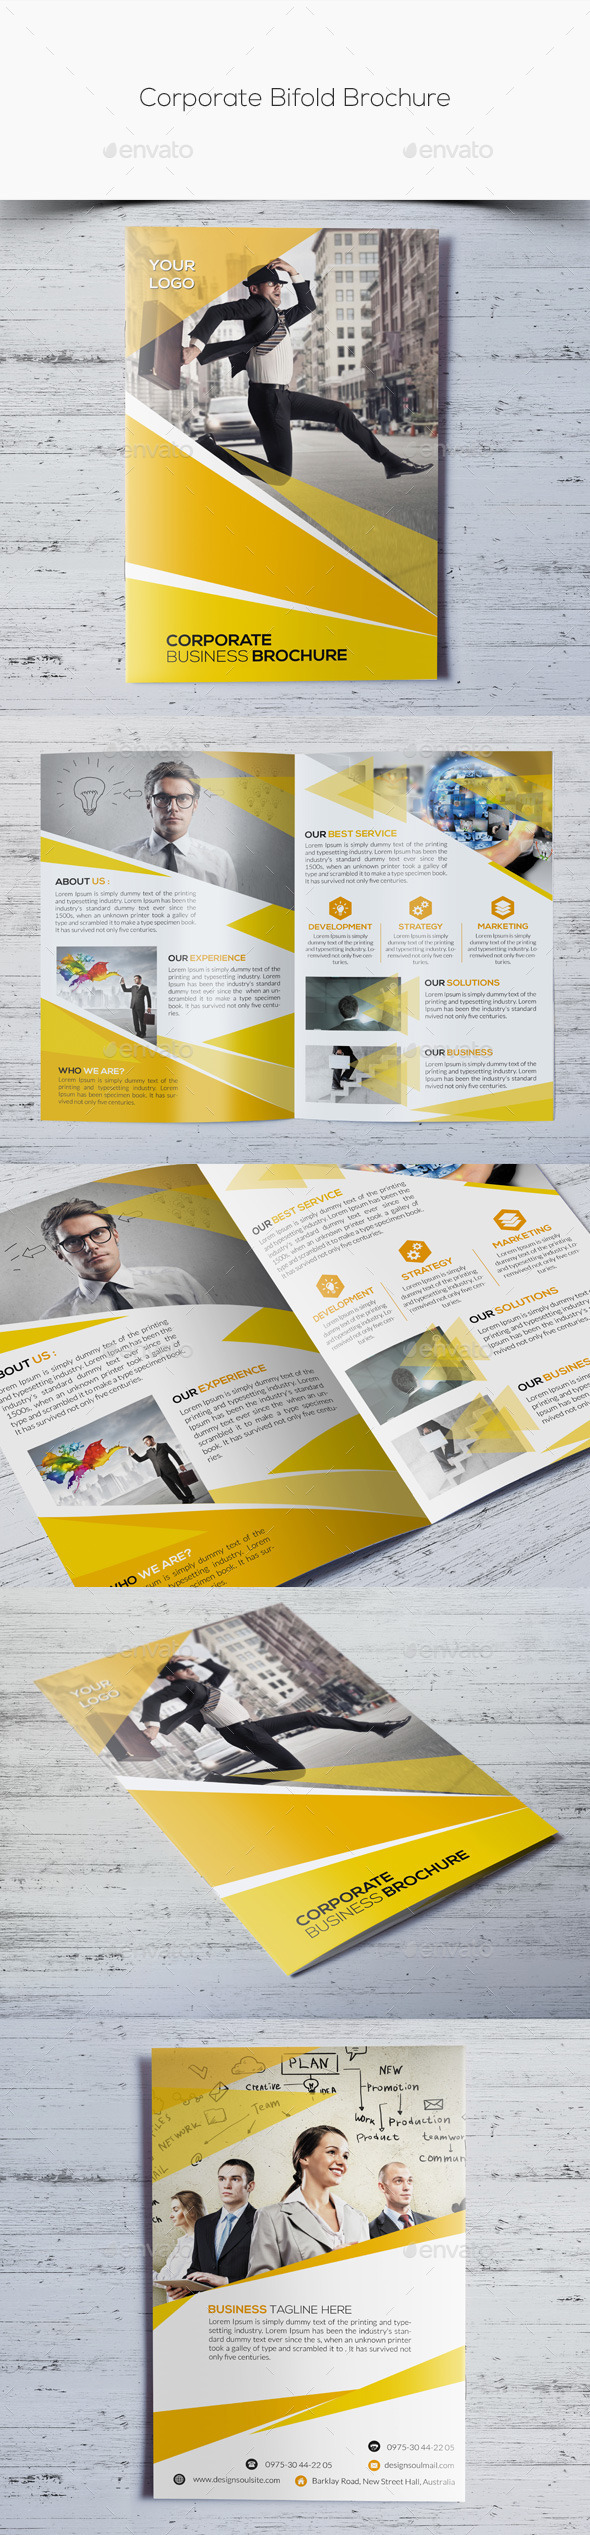 GraphicRiver Corporate Bifold Brochure 10985557